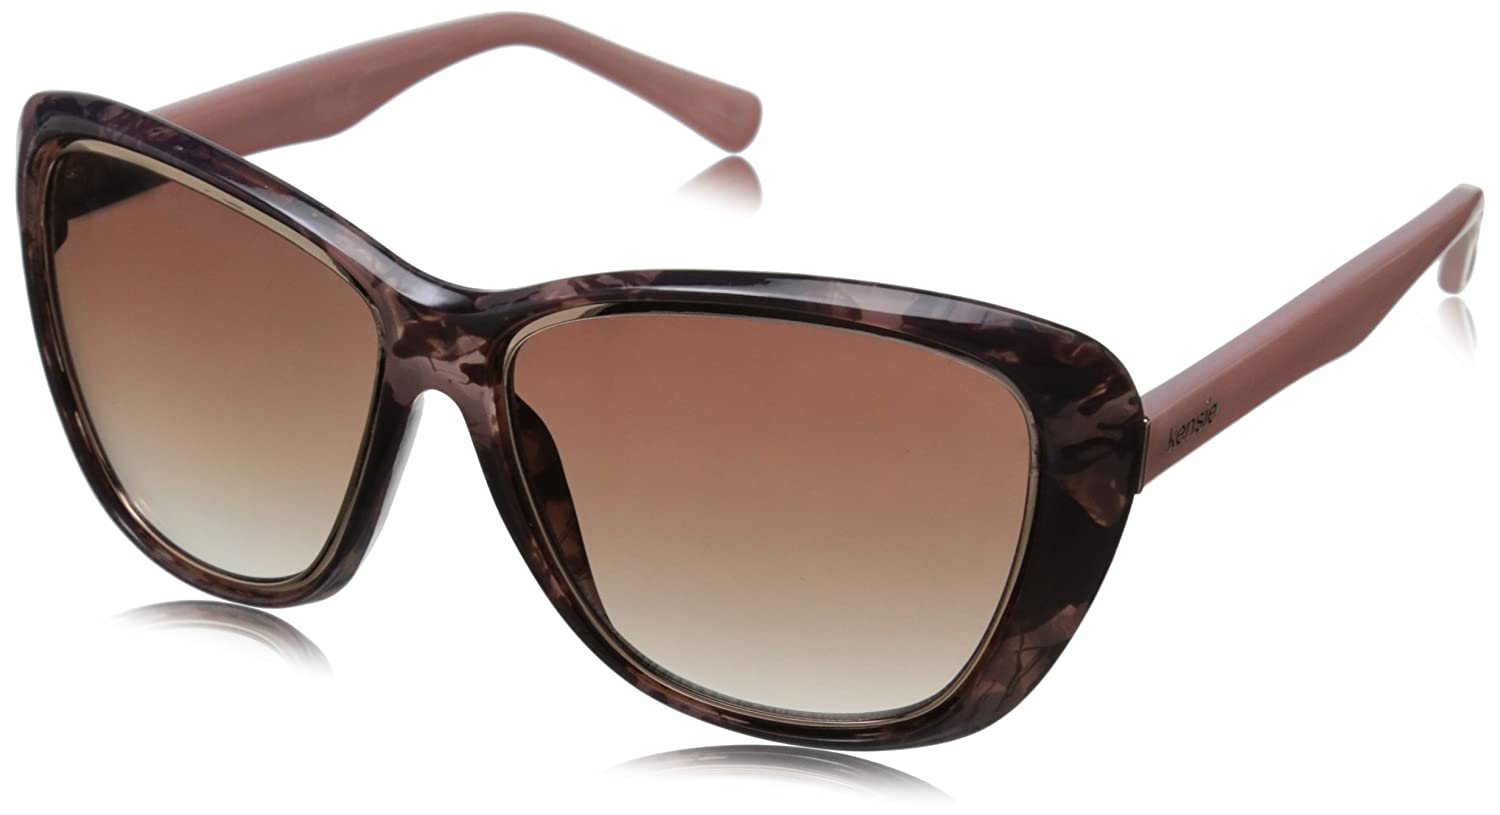 Kensie Women's Faye Sunglasses